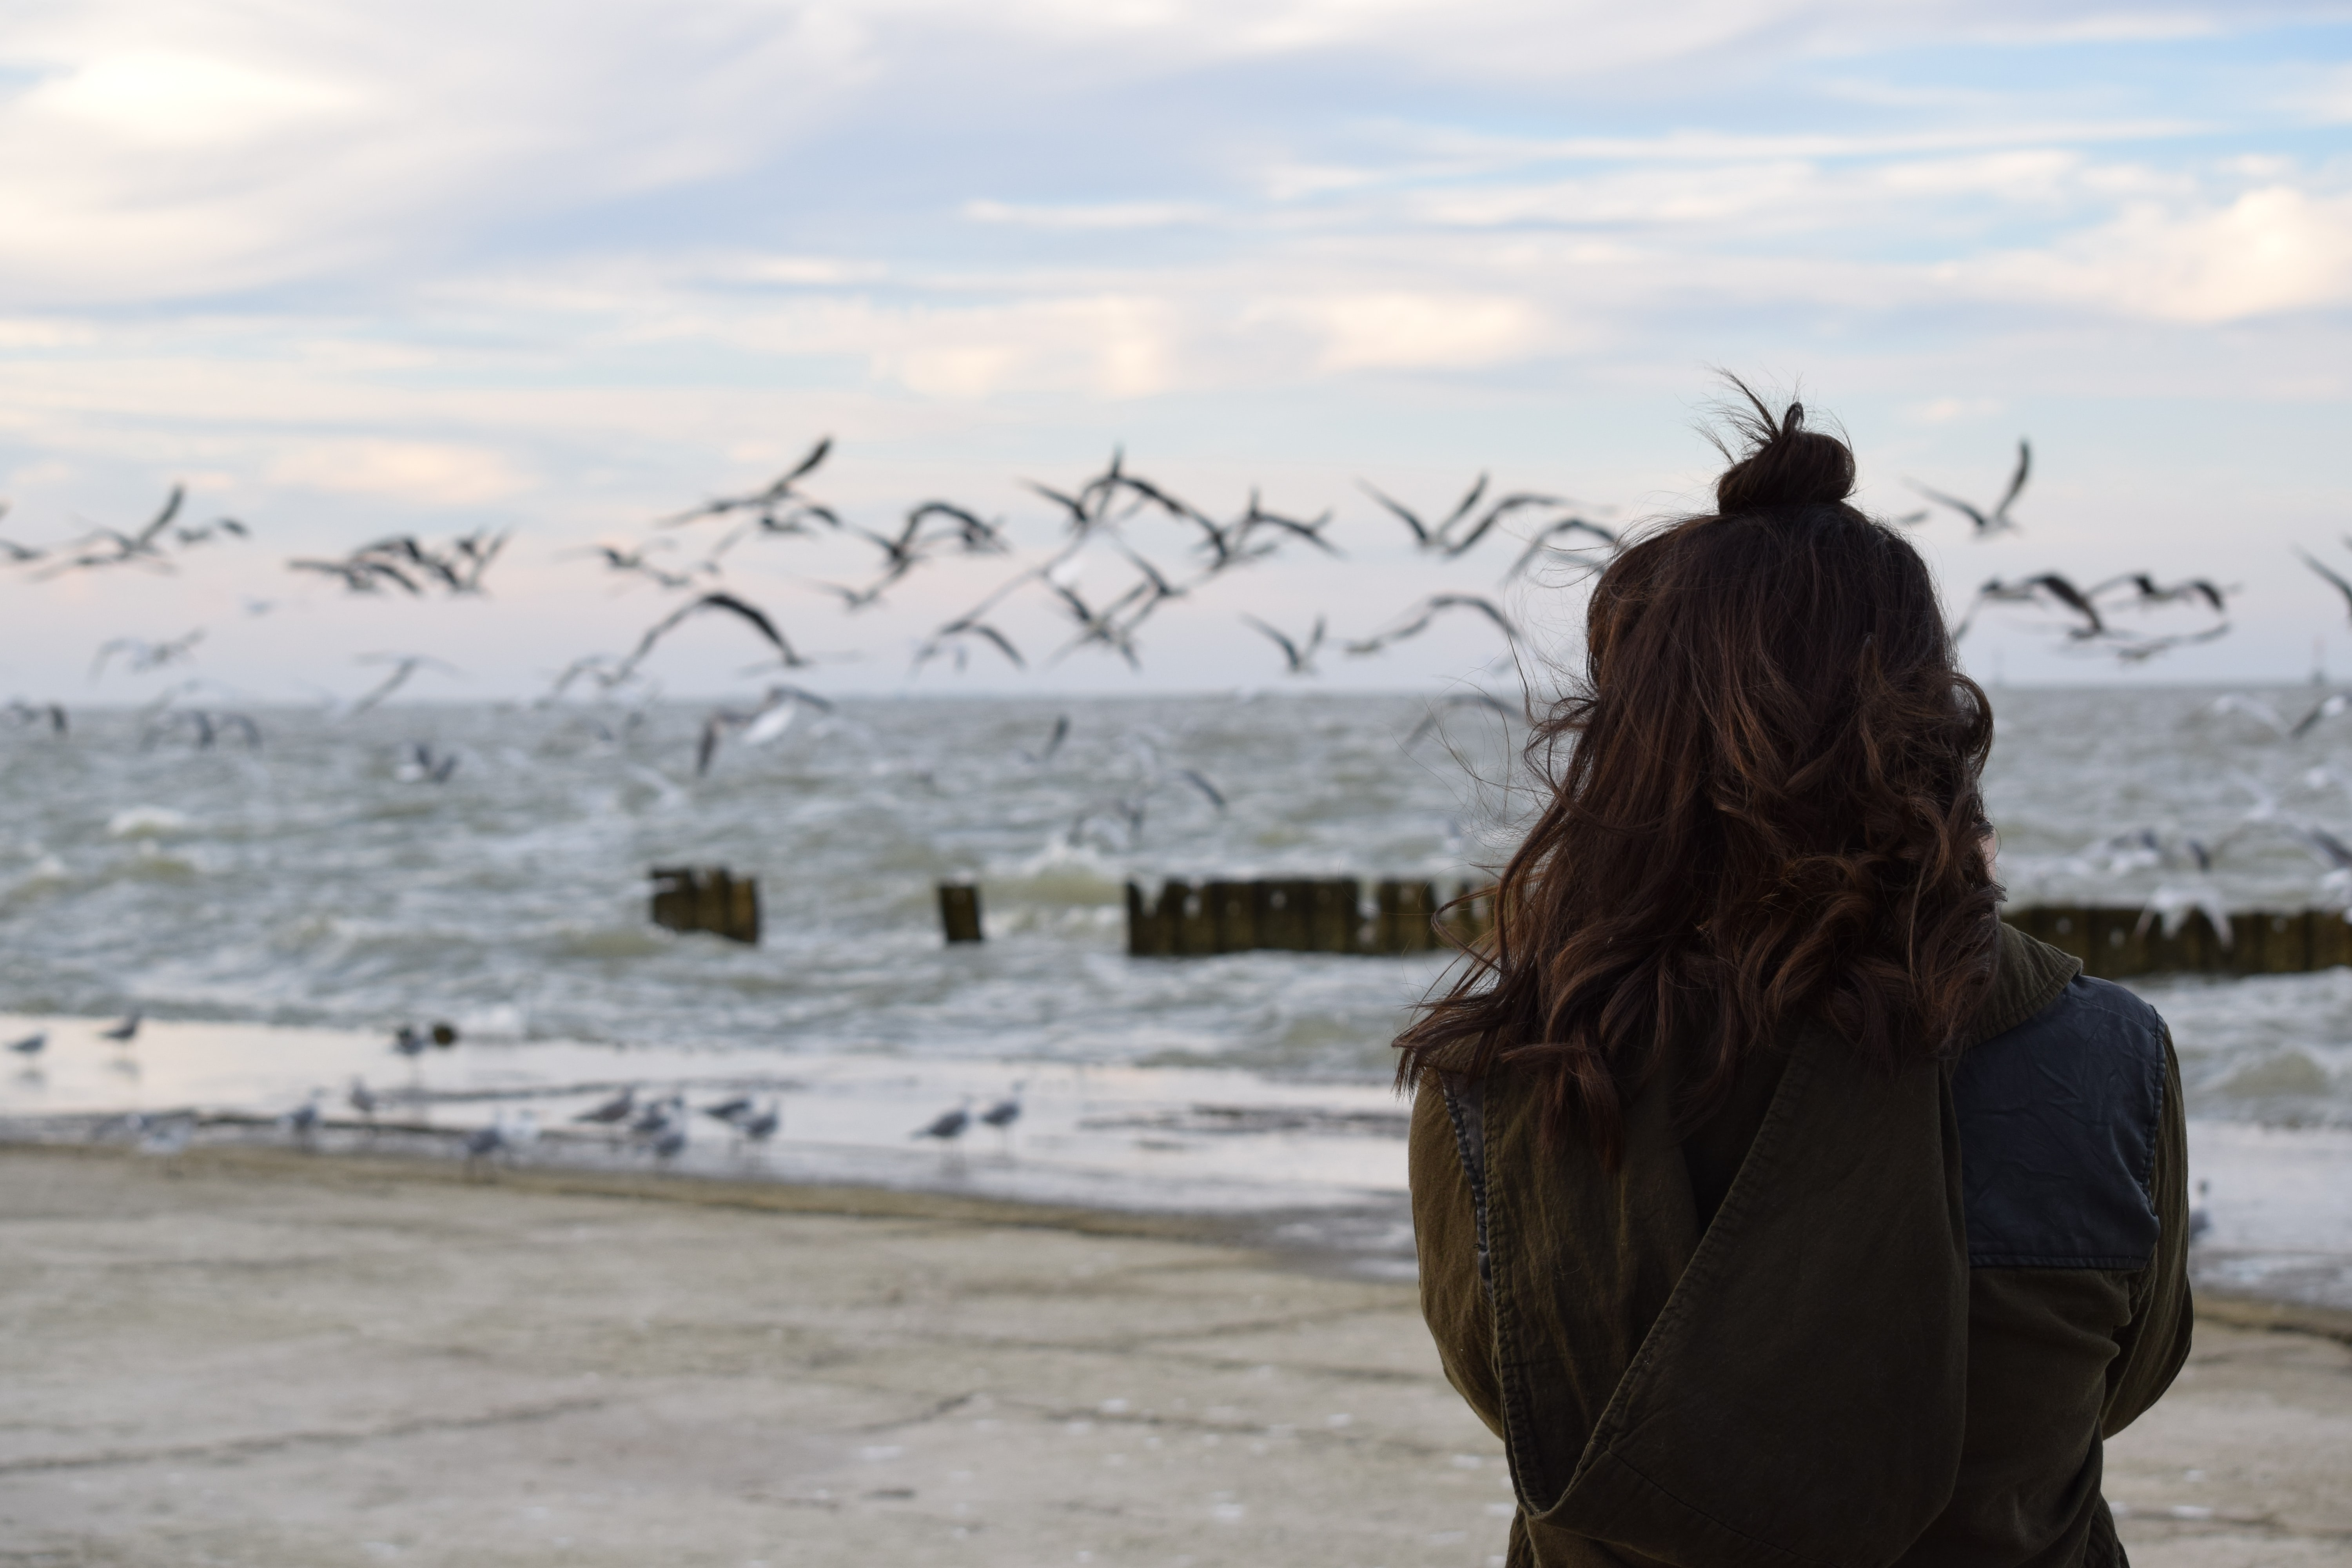 woman looking at flock of birds flying over body of water under cloudy sky